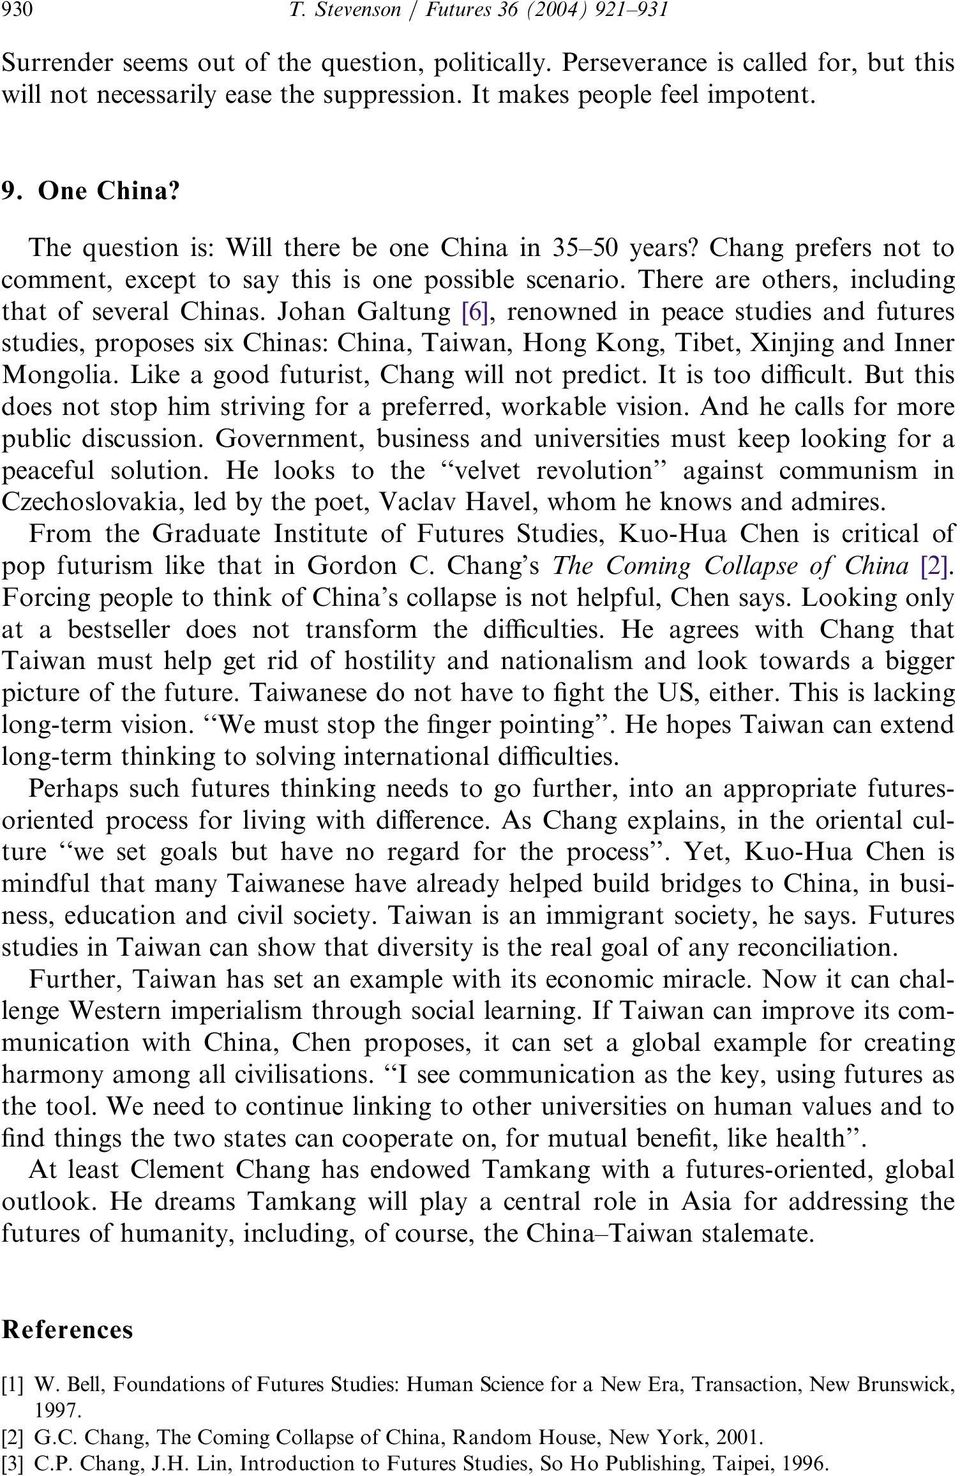 There are others, including that of several Chinas. Johan Galtung [6], renowned in peace studies and futures studies, proposes six Chinas: China, Taiwan, Hong Kong, Tibet, Xinjing and Inner Mongolia.